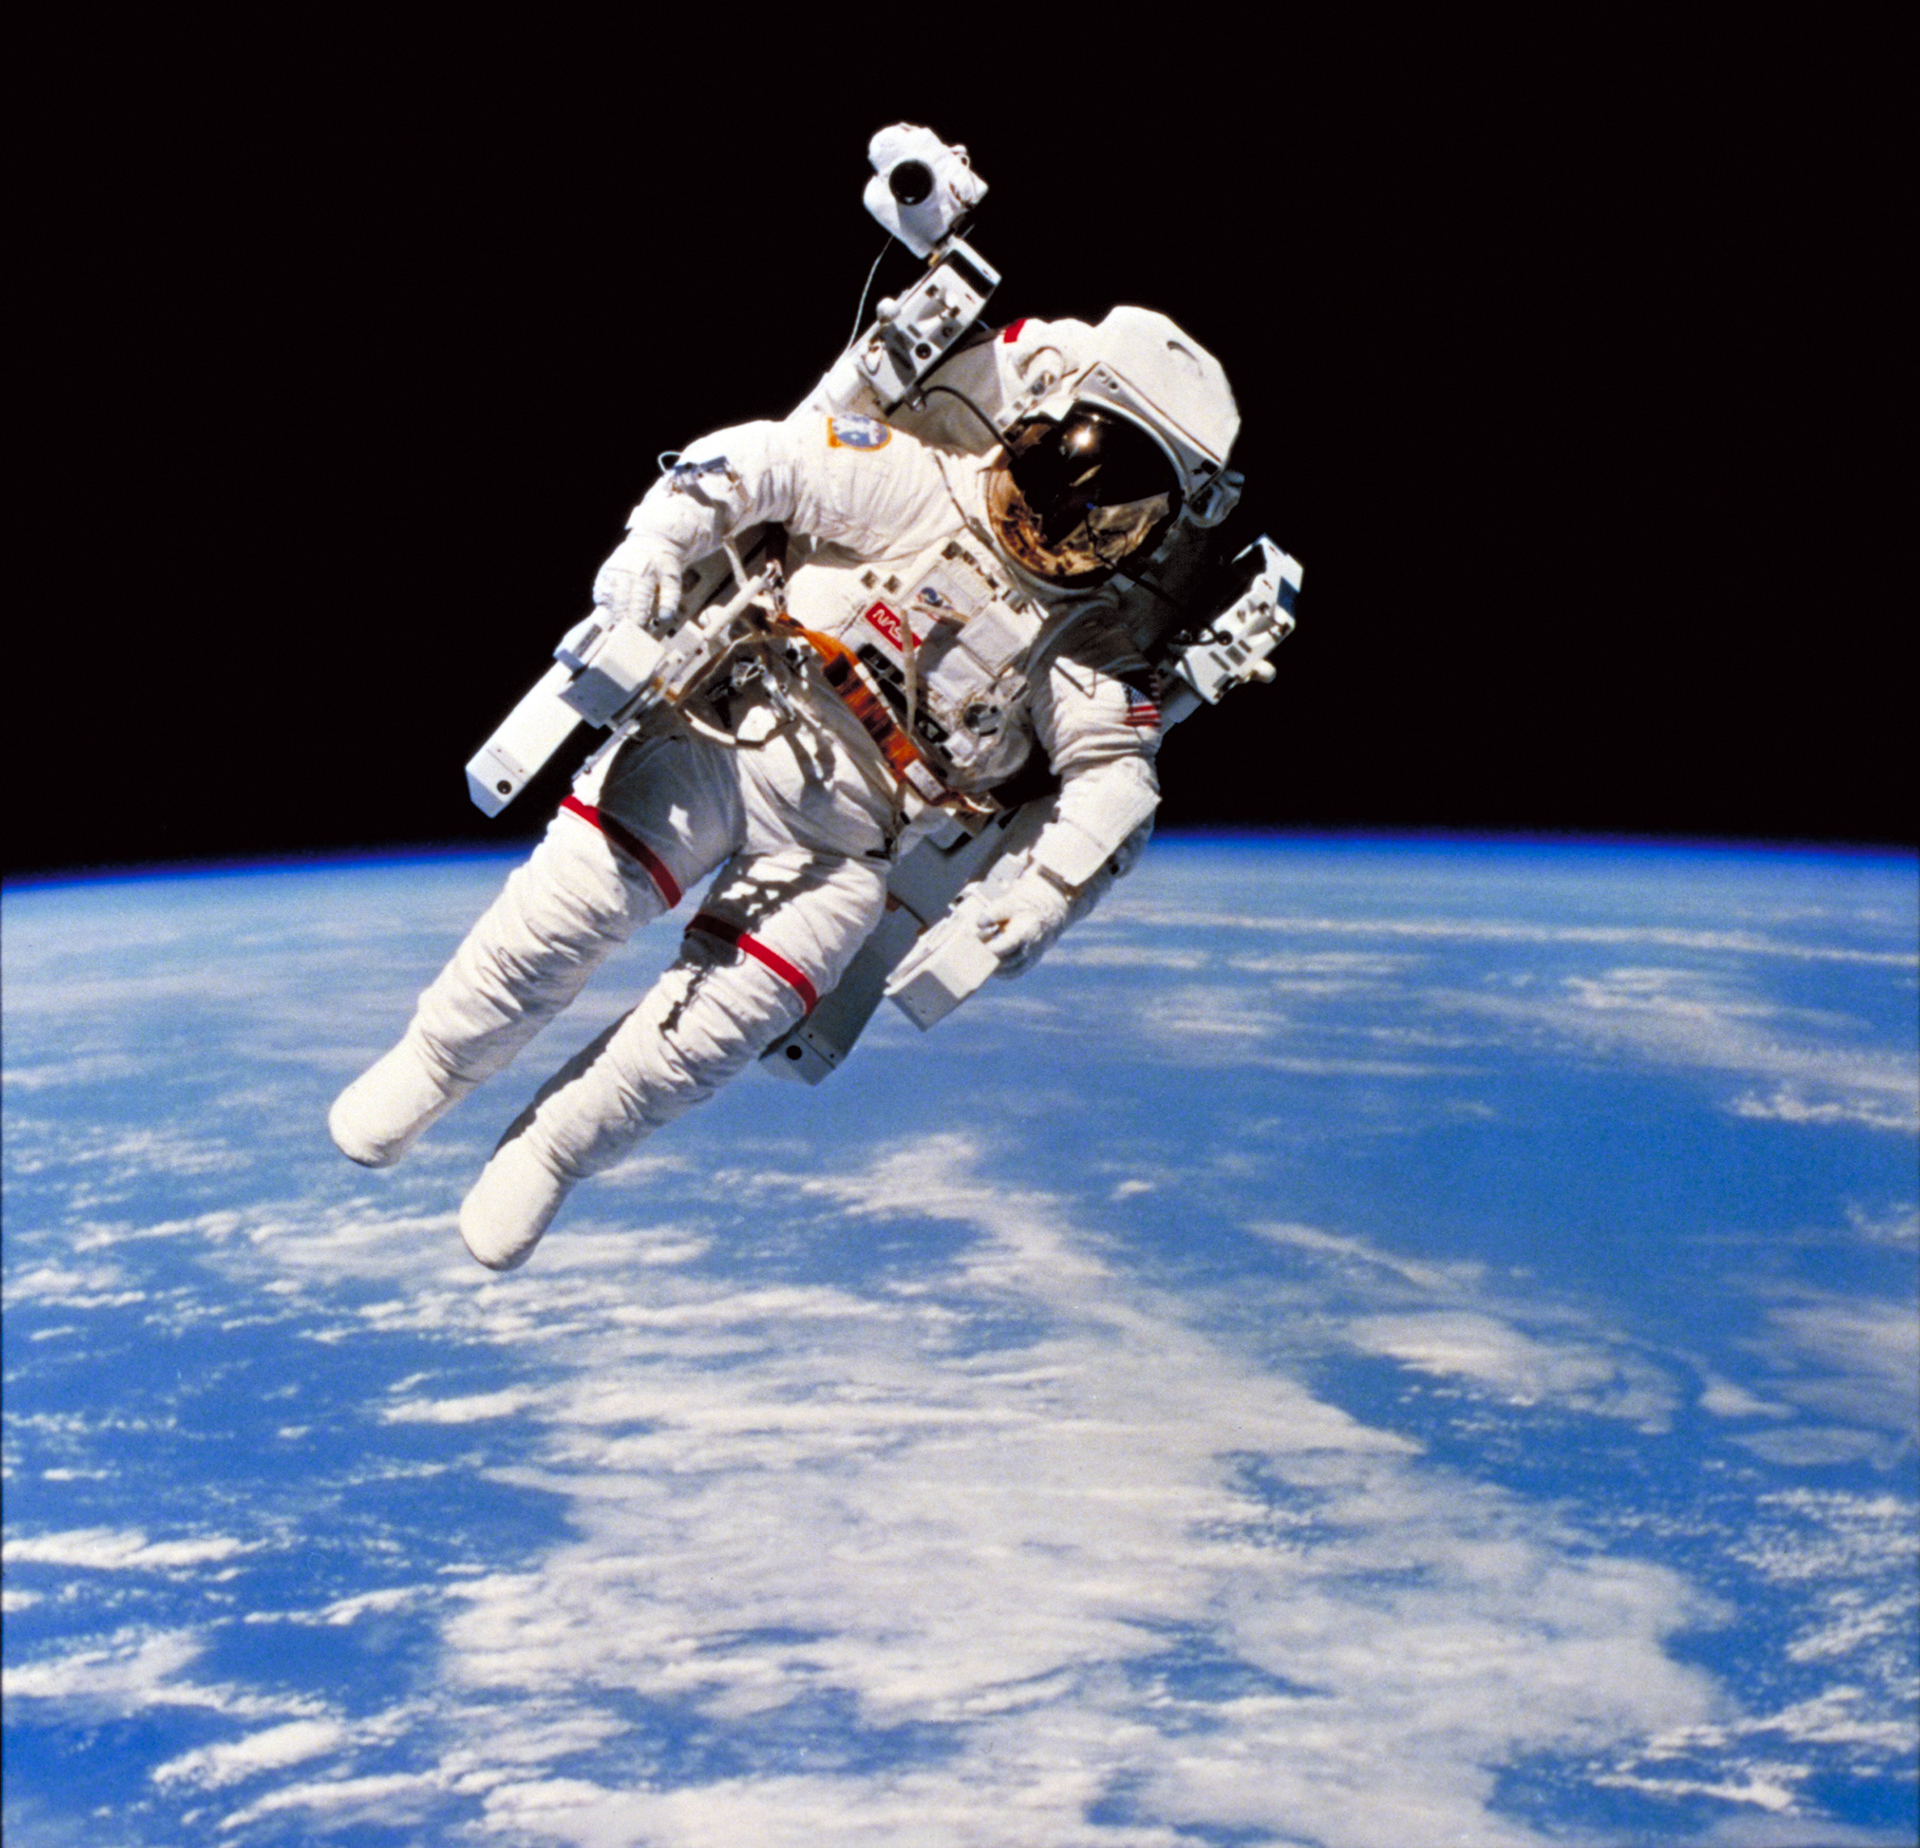 Manned Maneuvering Unit (MMU), a personal backpack propulsion system astronauts wear when working in orbit outside the Space Shuttle.